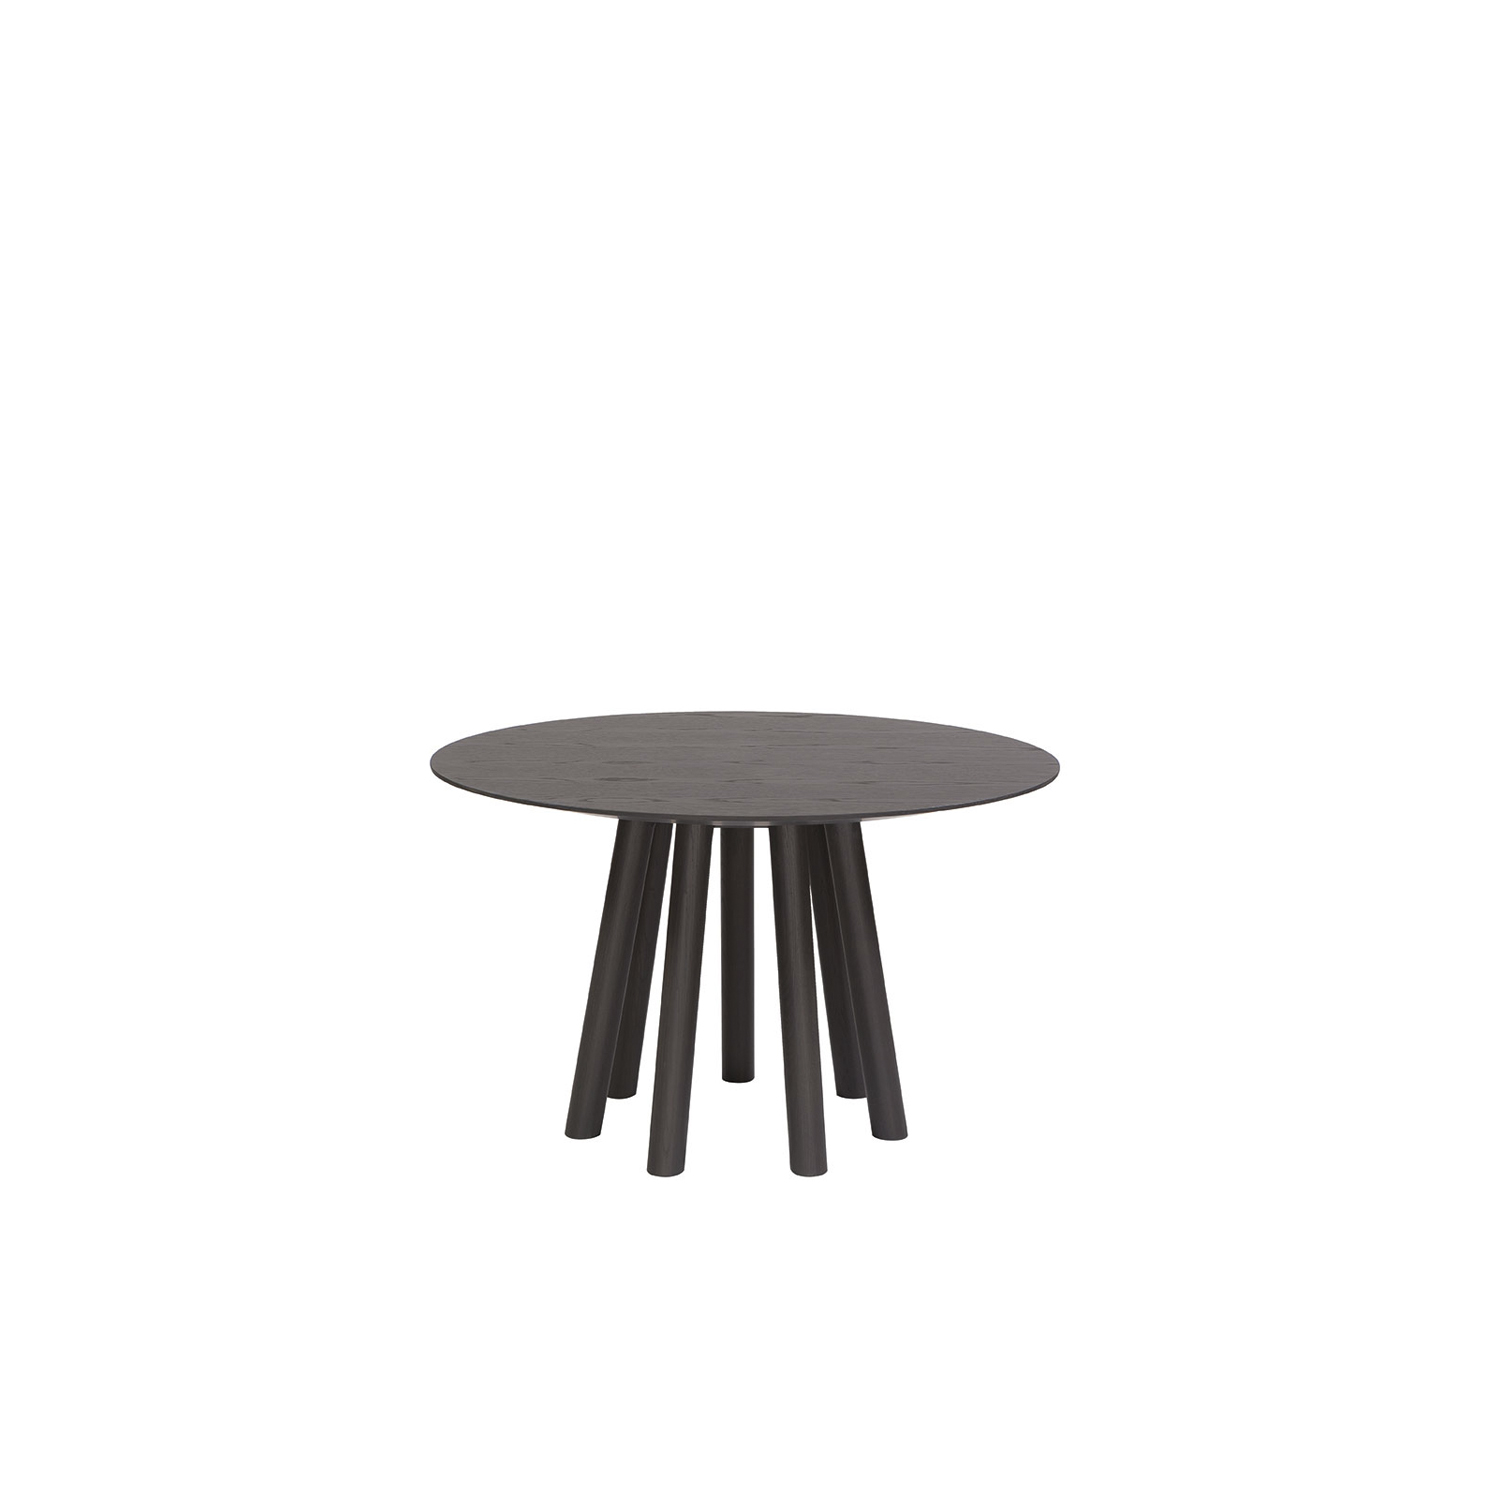 Mos-I-Ko 001 Ra Round Dining Table - Round table in various sizes with shaped top with a thin edge,